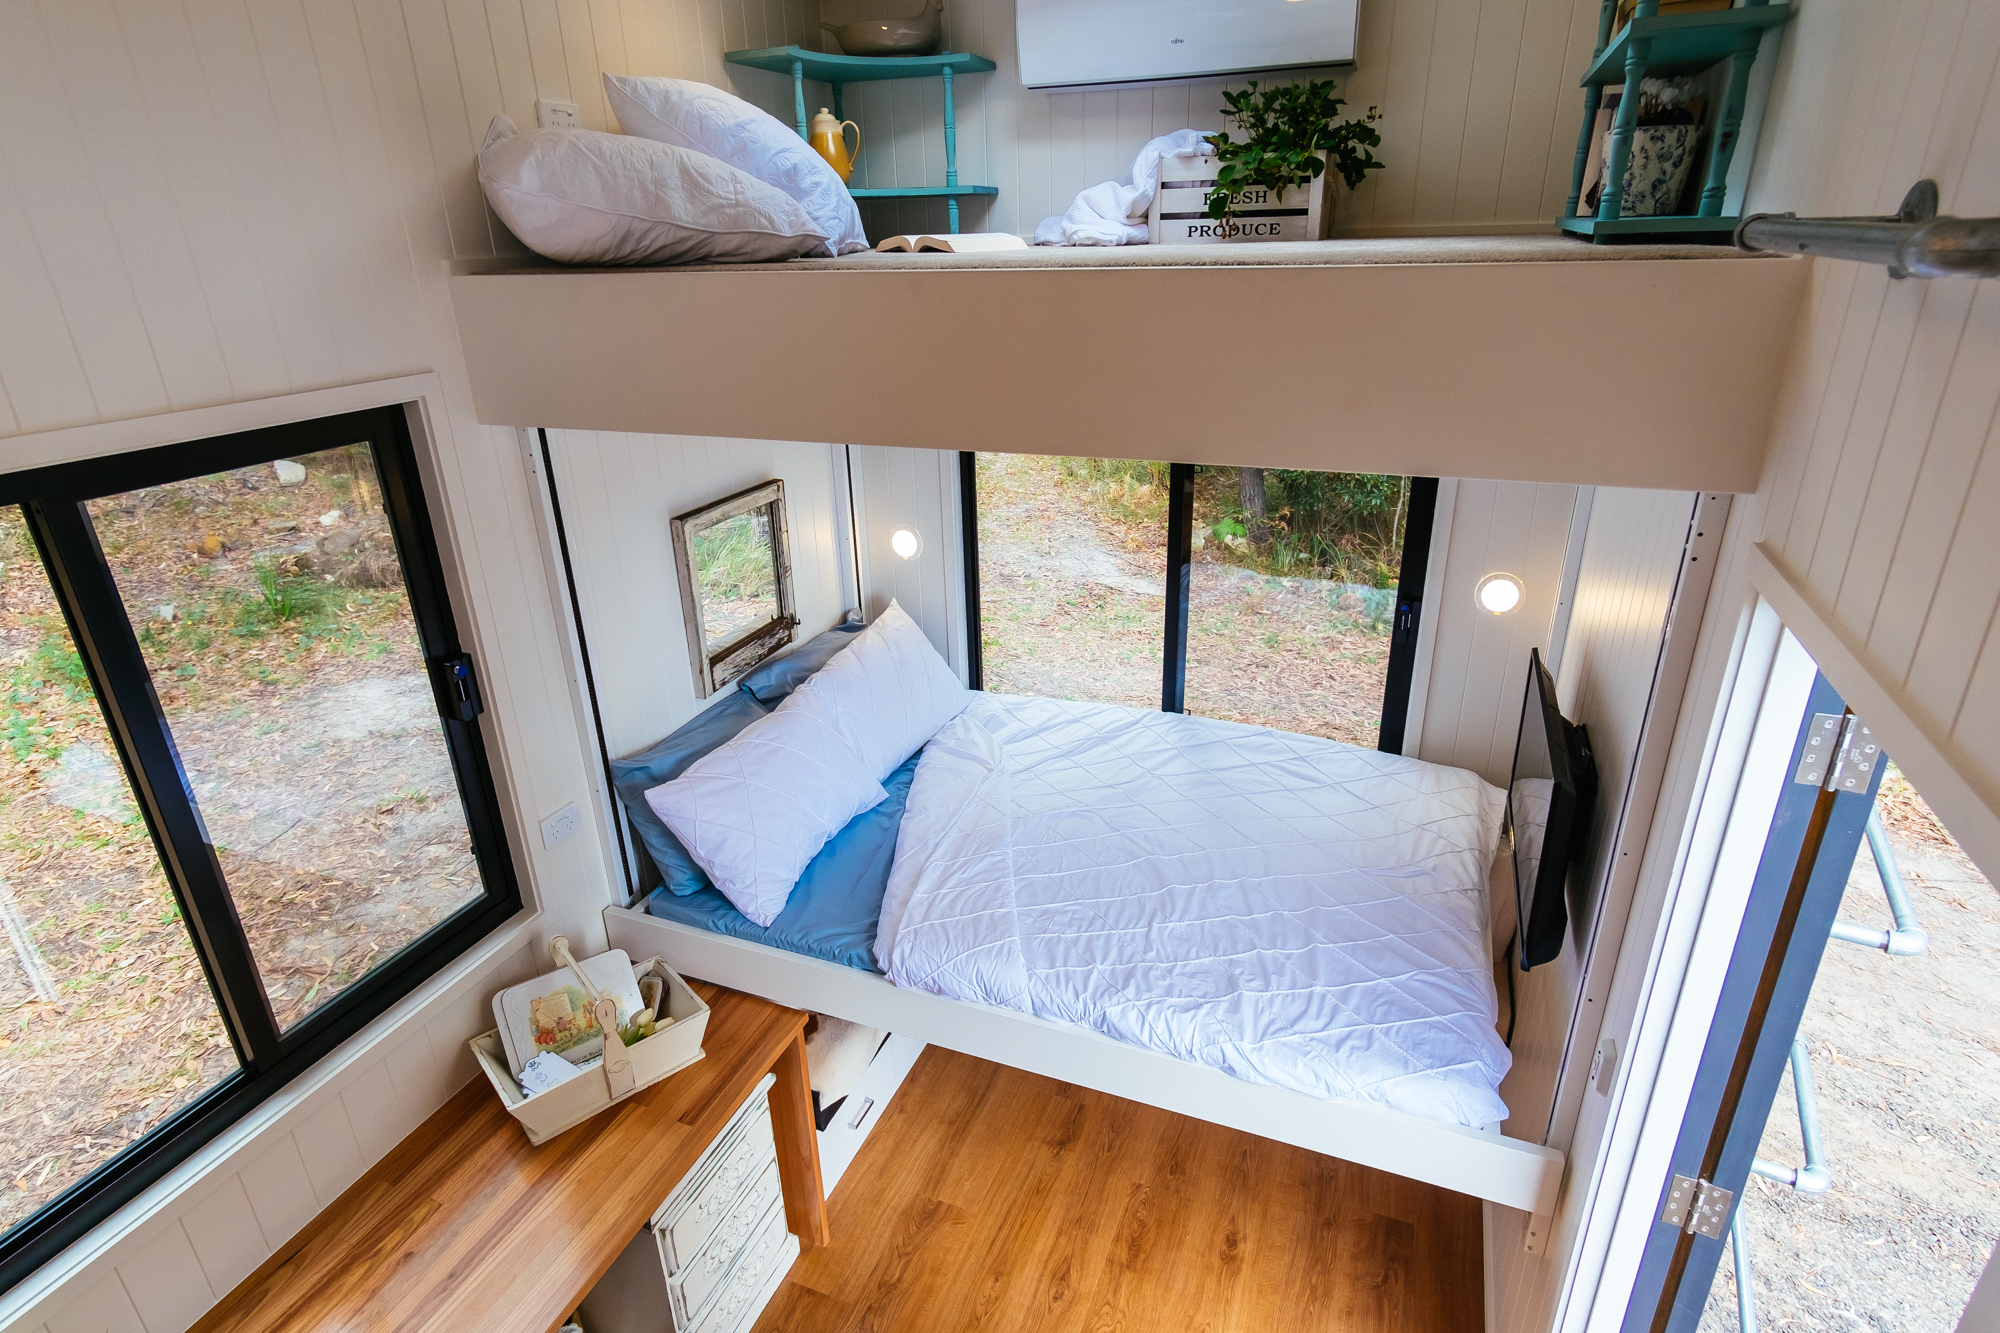 Eco Tiny Home Bed Lift (down)